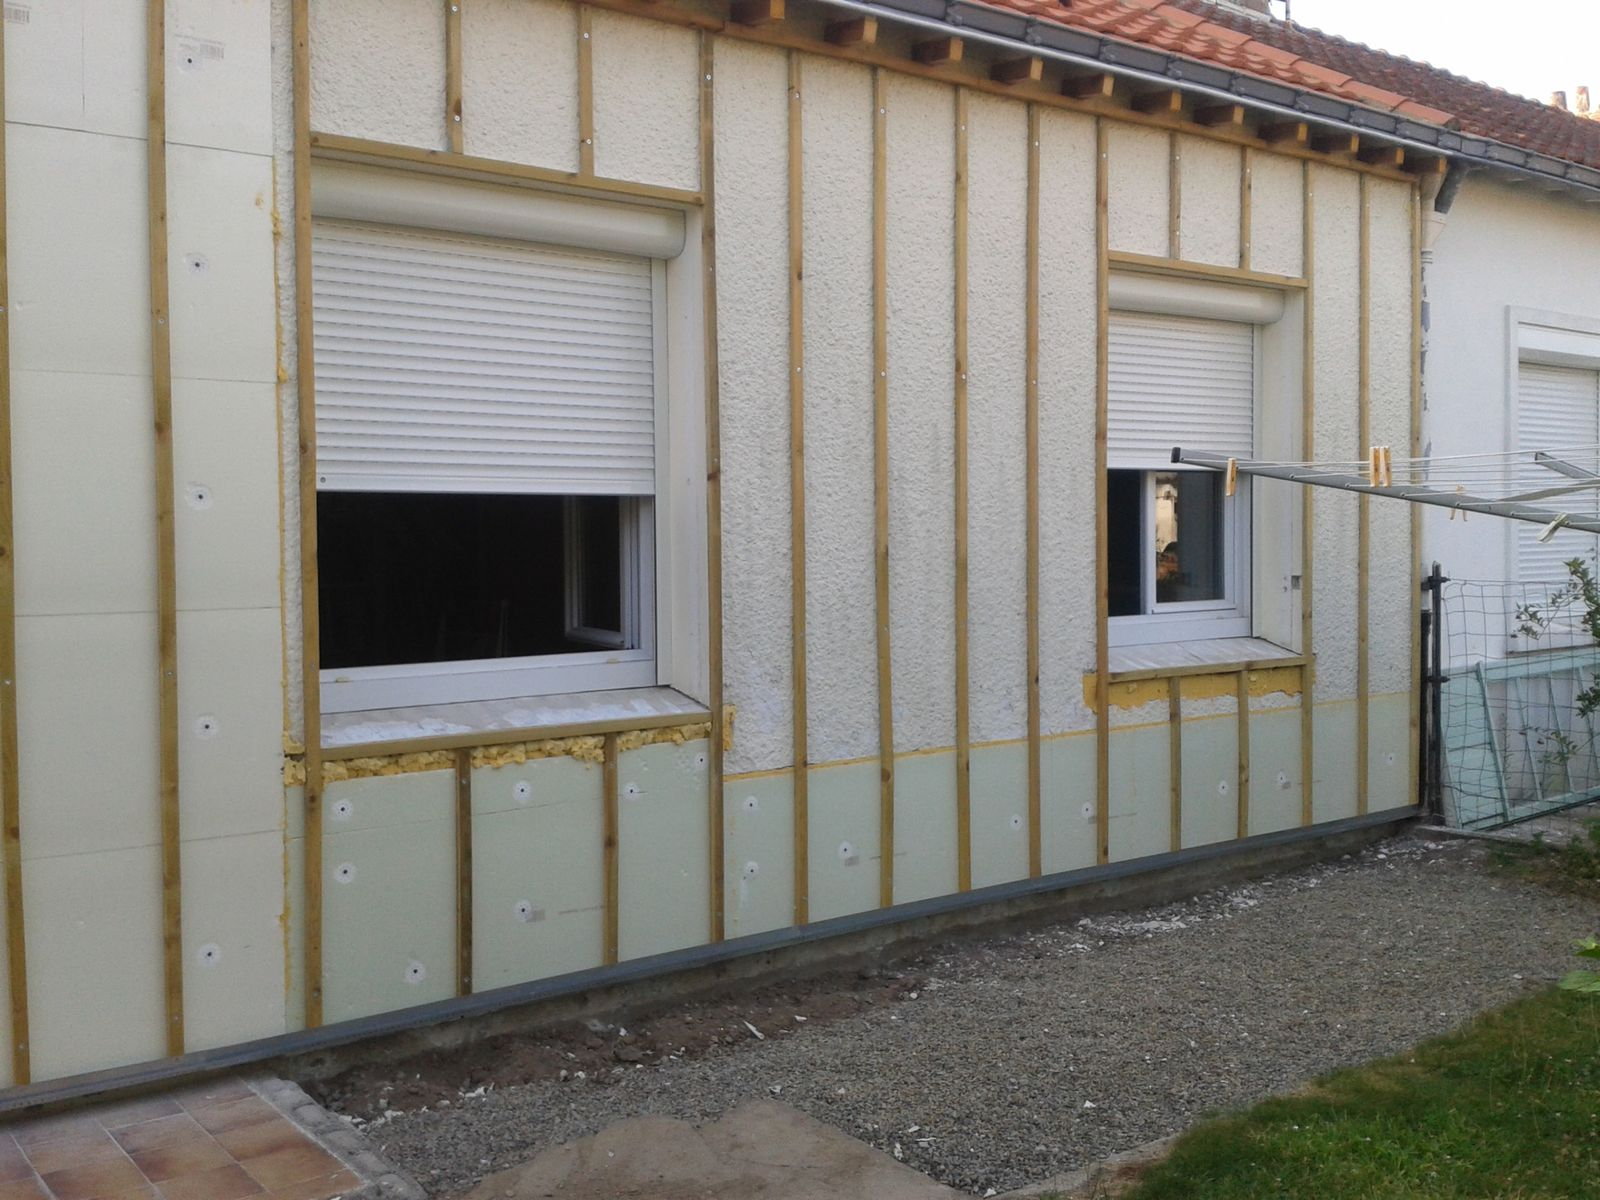 Bardage pvc sur isolation ext rieure ite r novation d for Renovation bardage bois exterieur